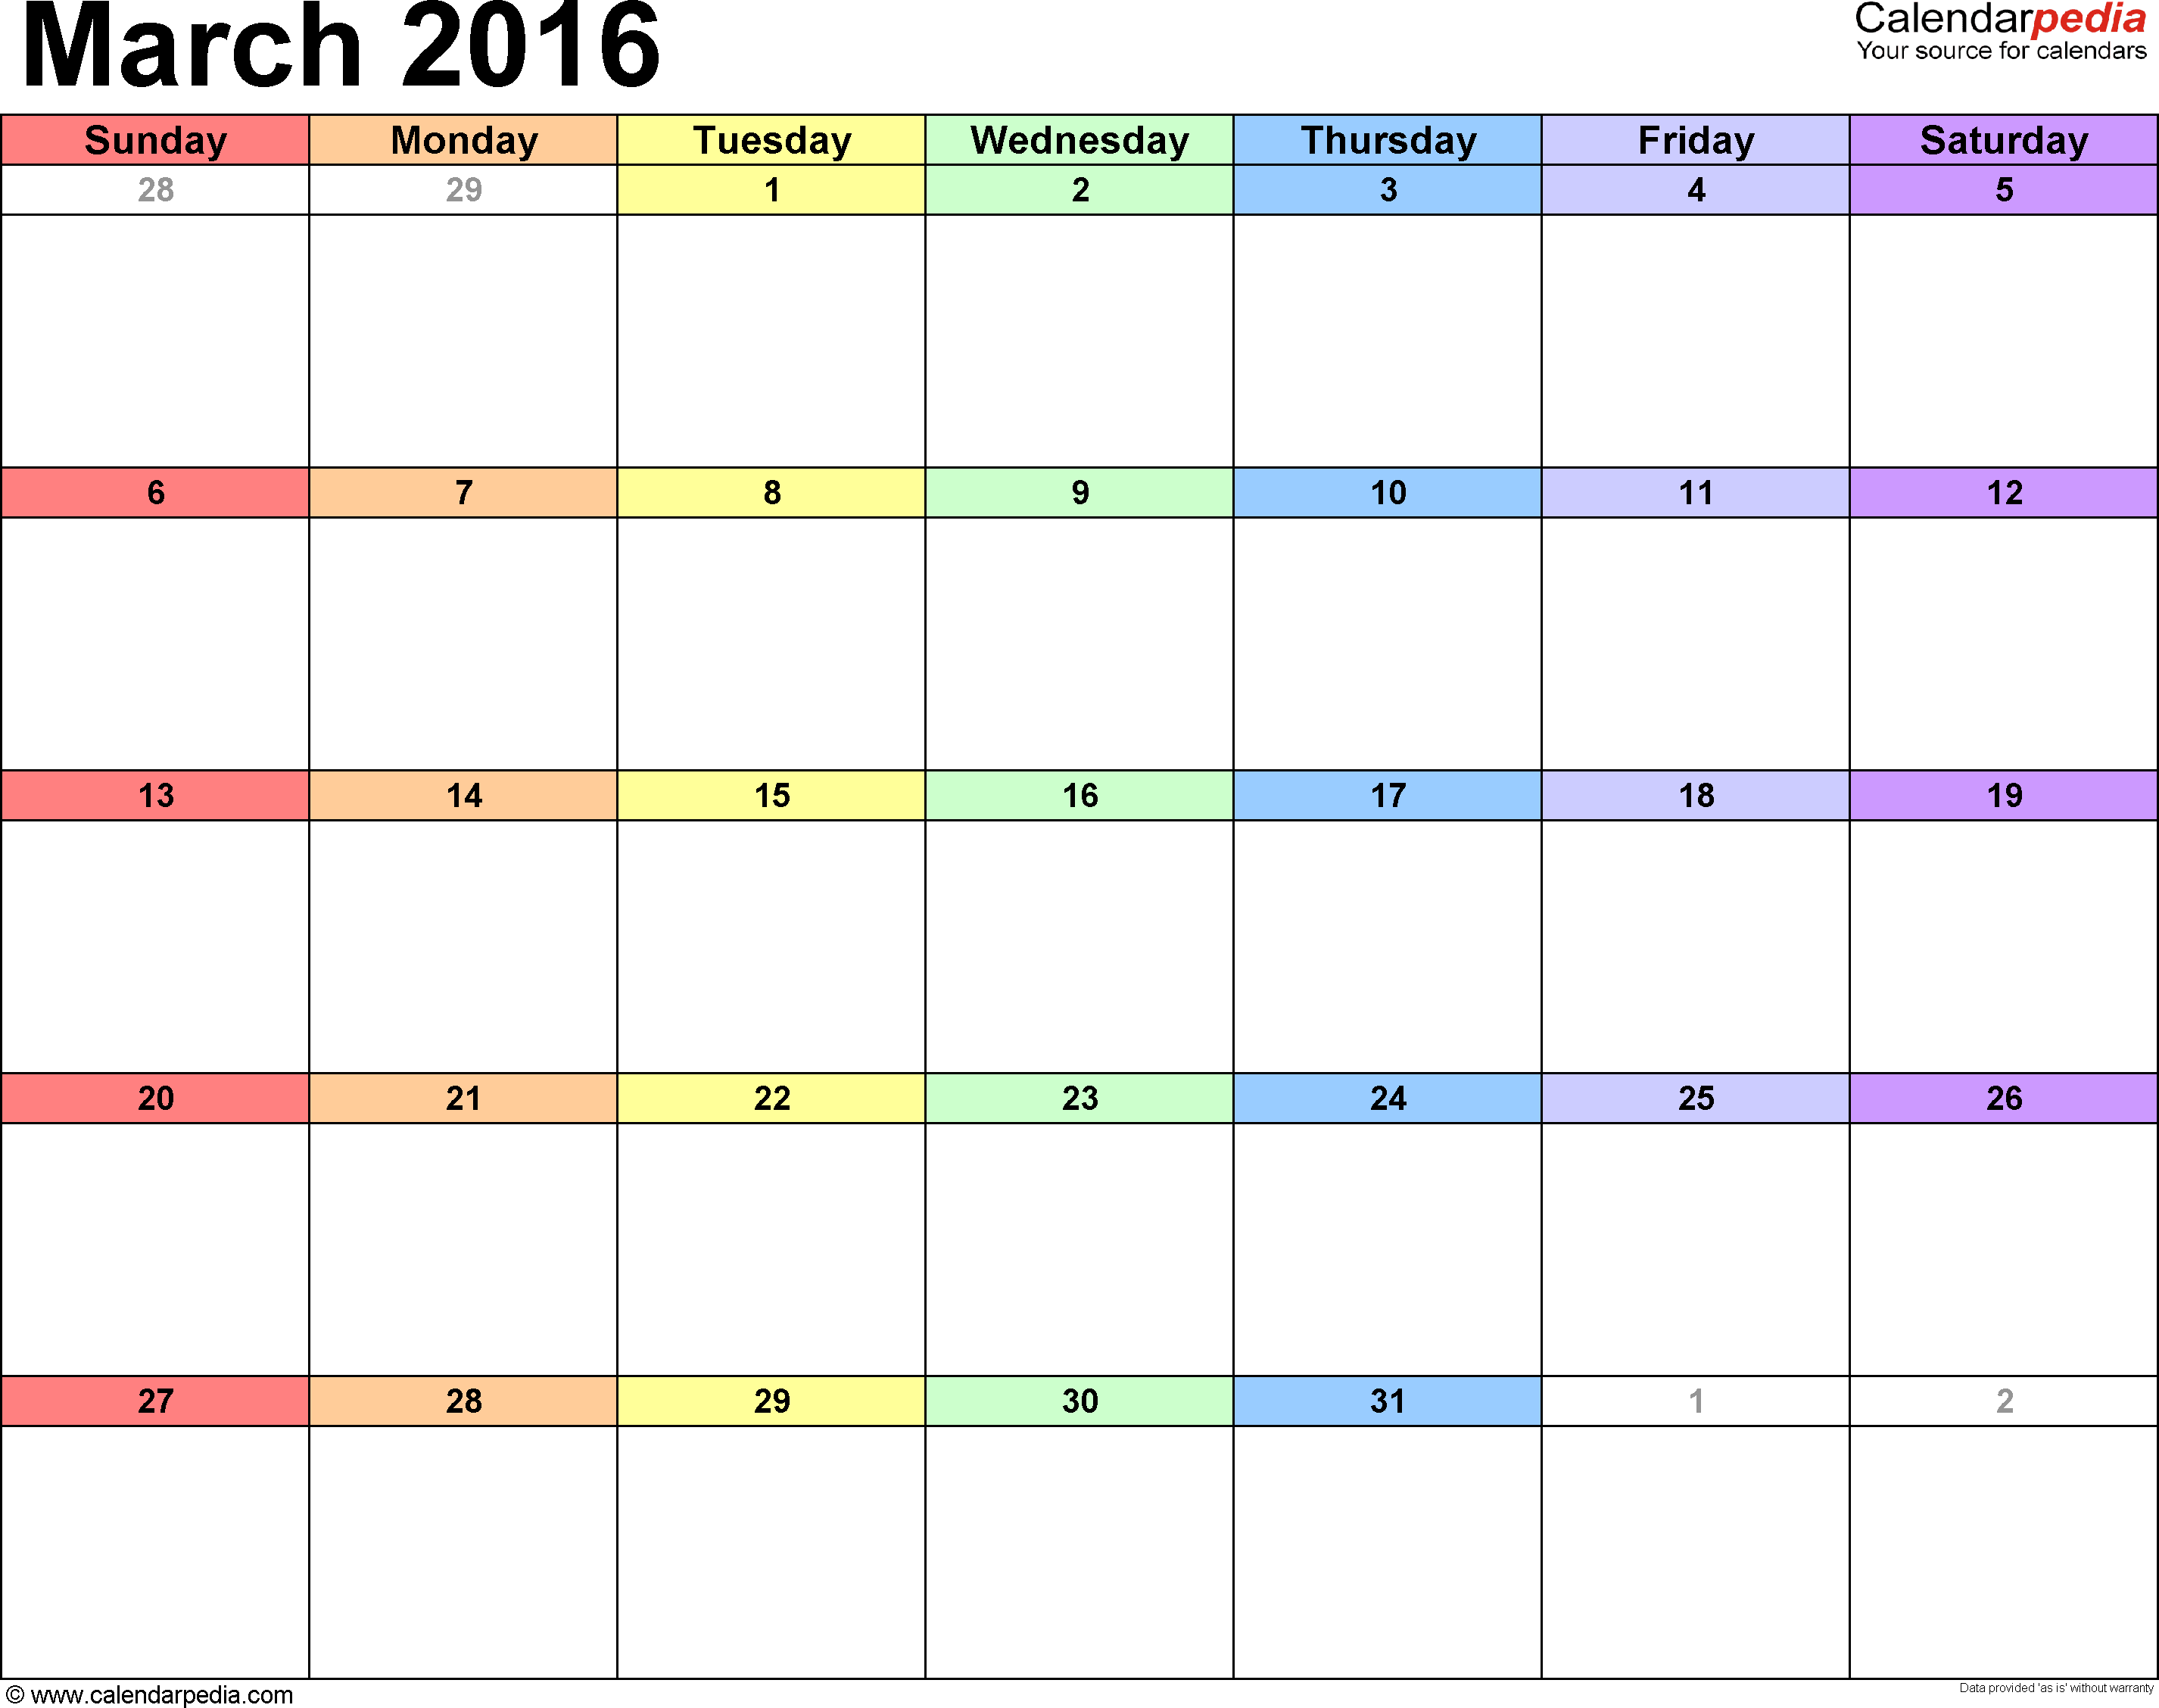 March 2016 calendar printable template